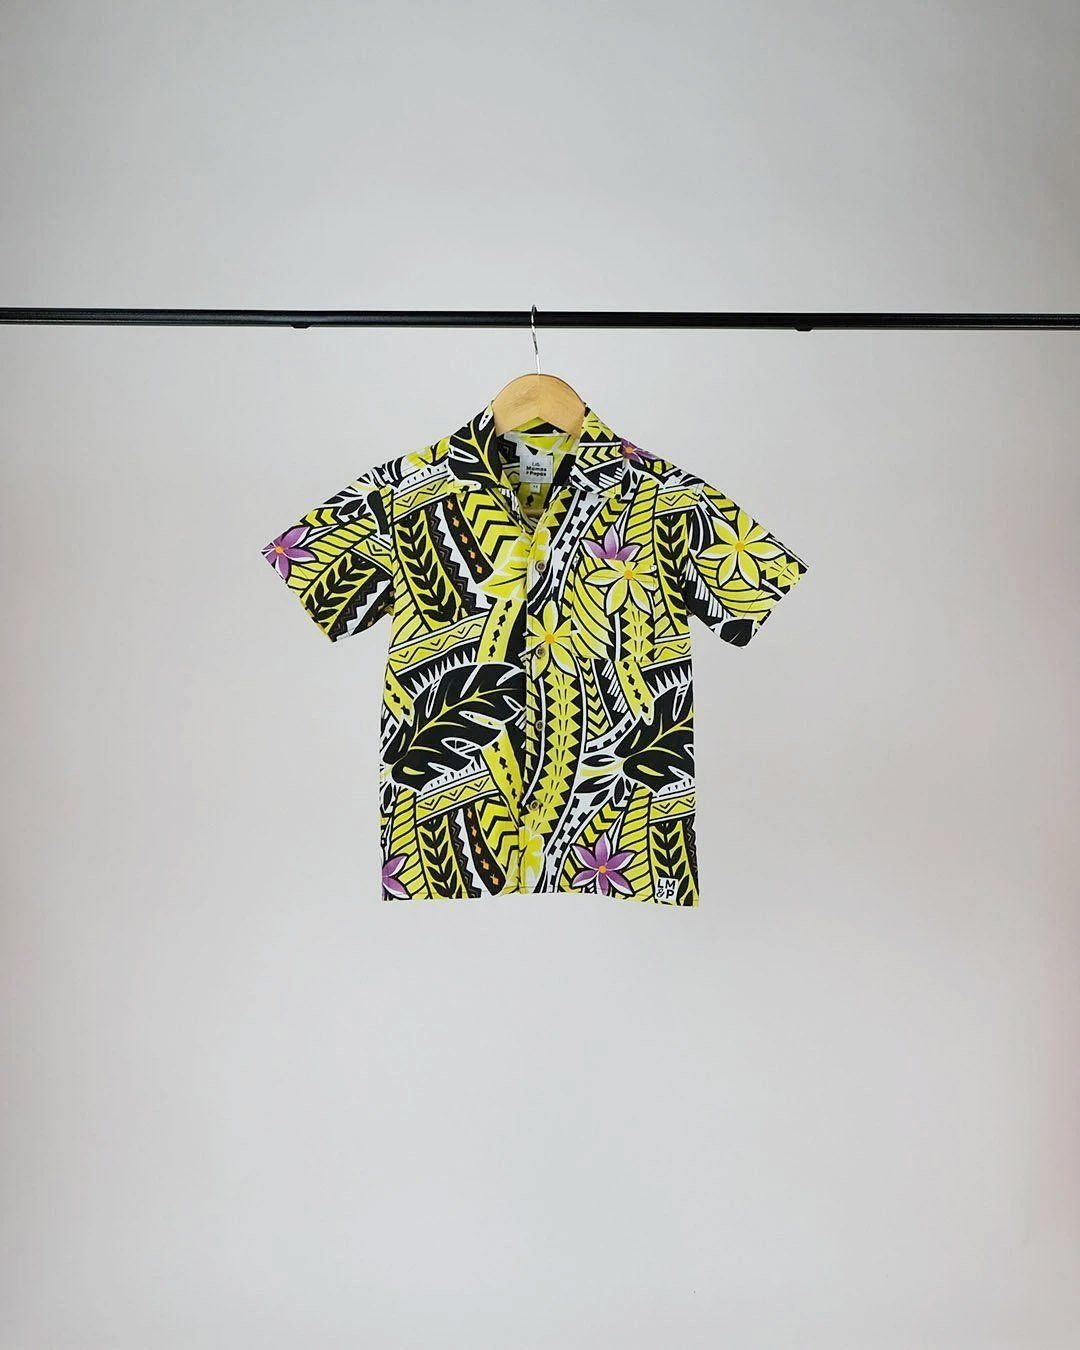 Kanoa Baby Short Sleeve Shirt - Island in The Sun